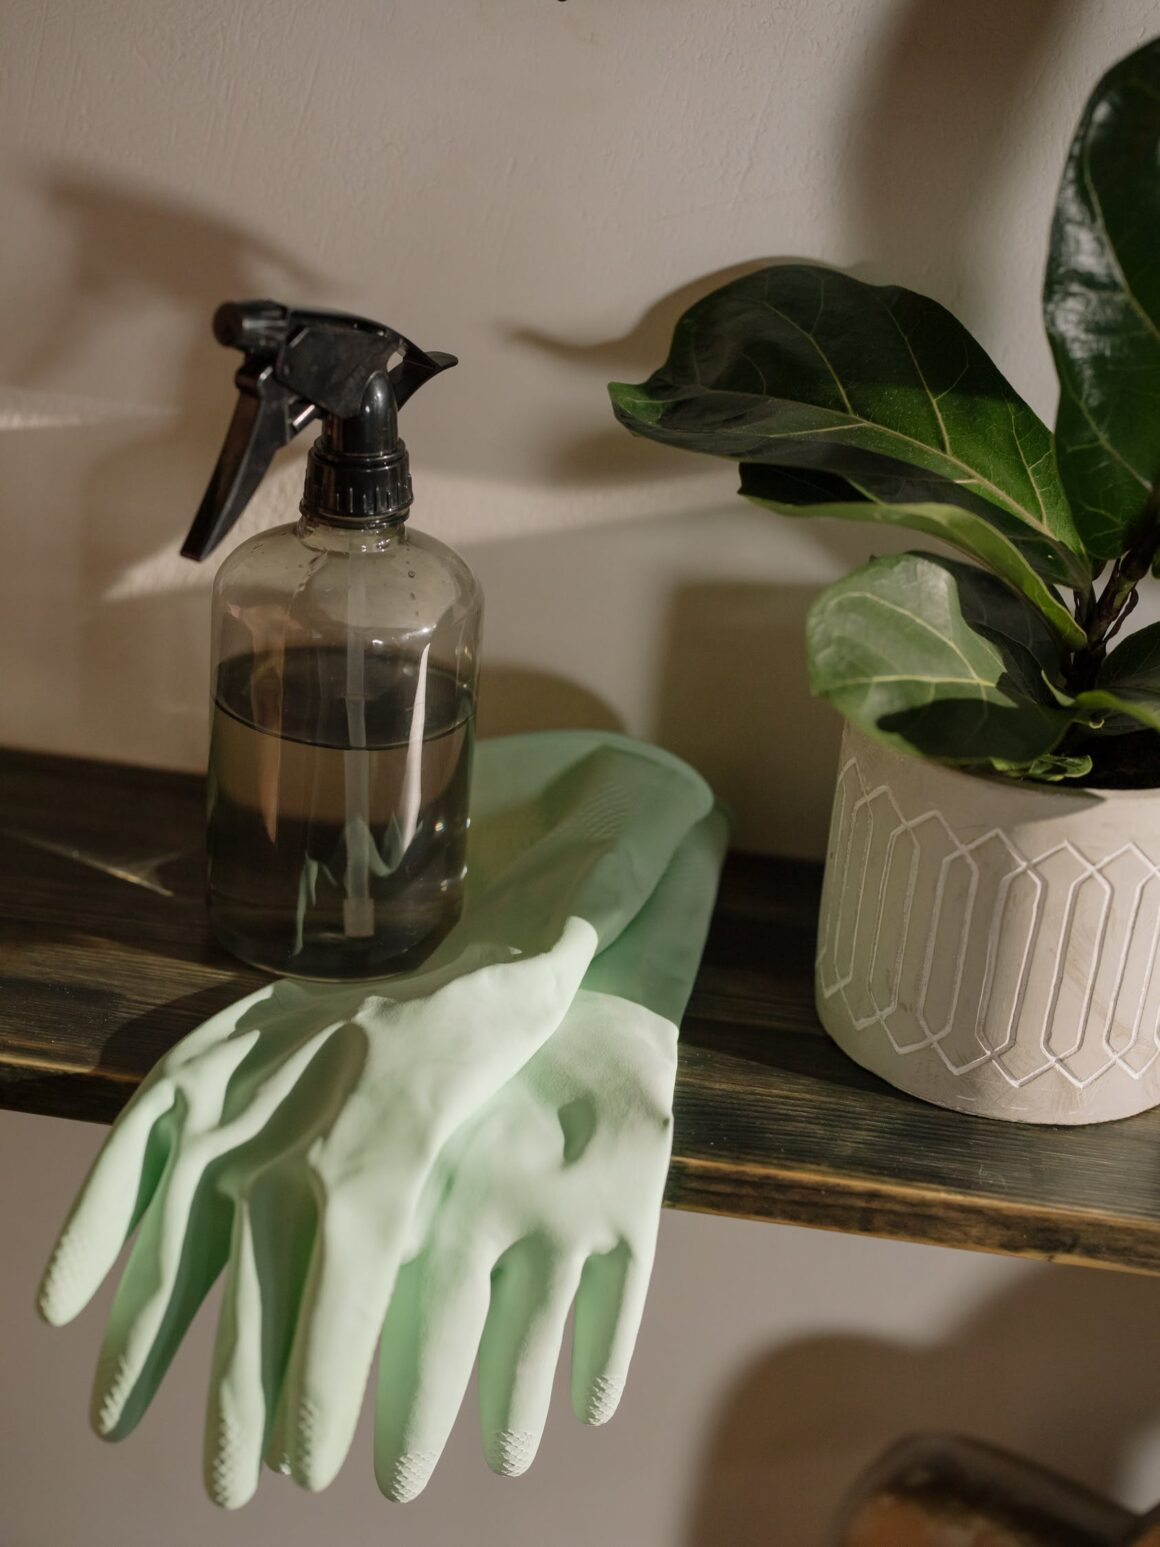 The Only List of Non-Toxic Cleaning Products You Need